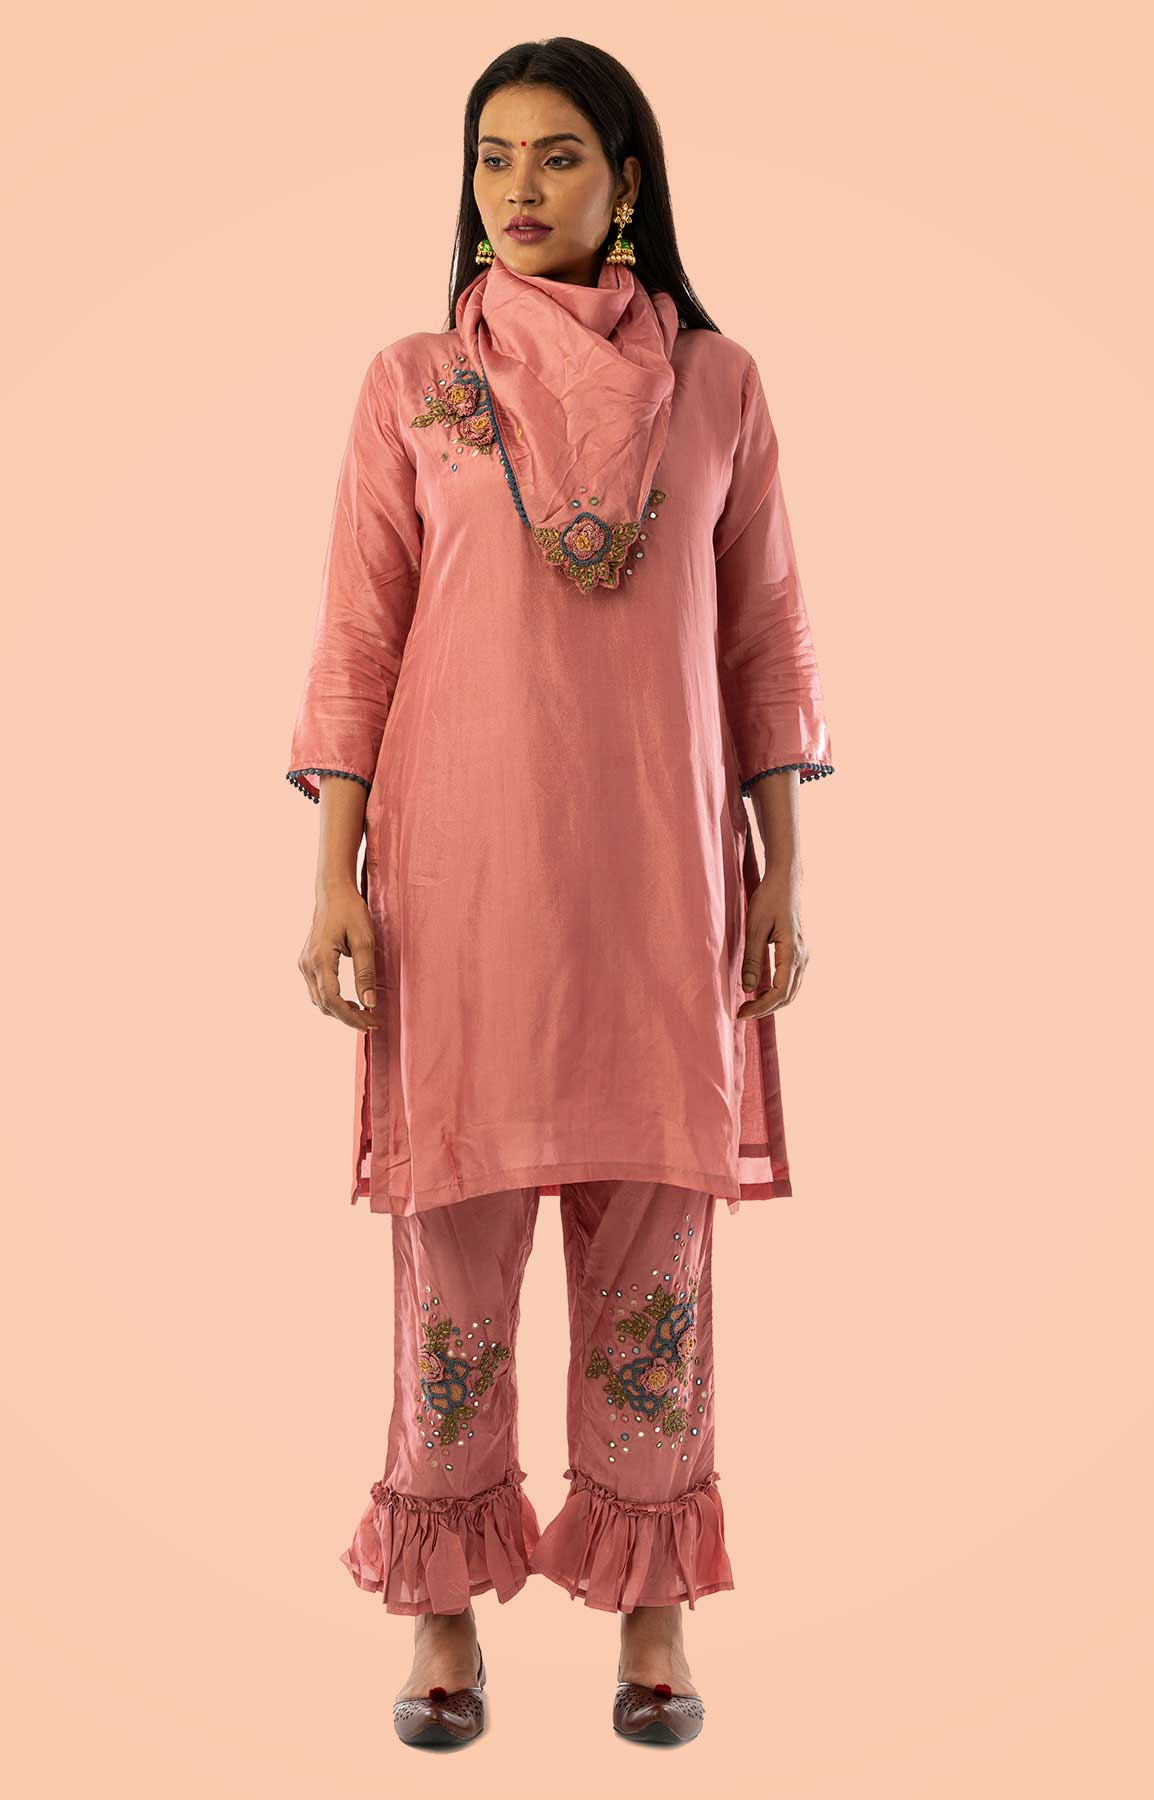 Coral Pink Uppada Silk Suit With Resham Work Paired With Scarf – Viraaya By Ushnakmals